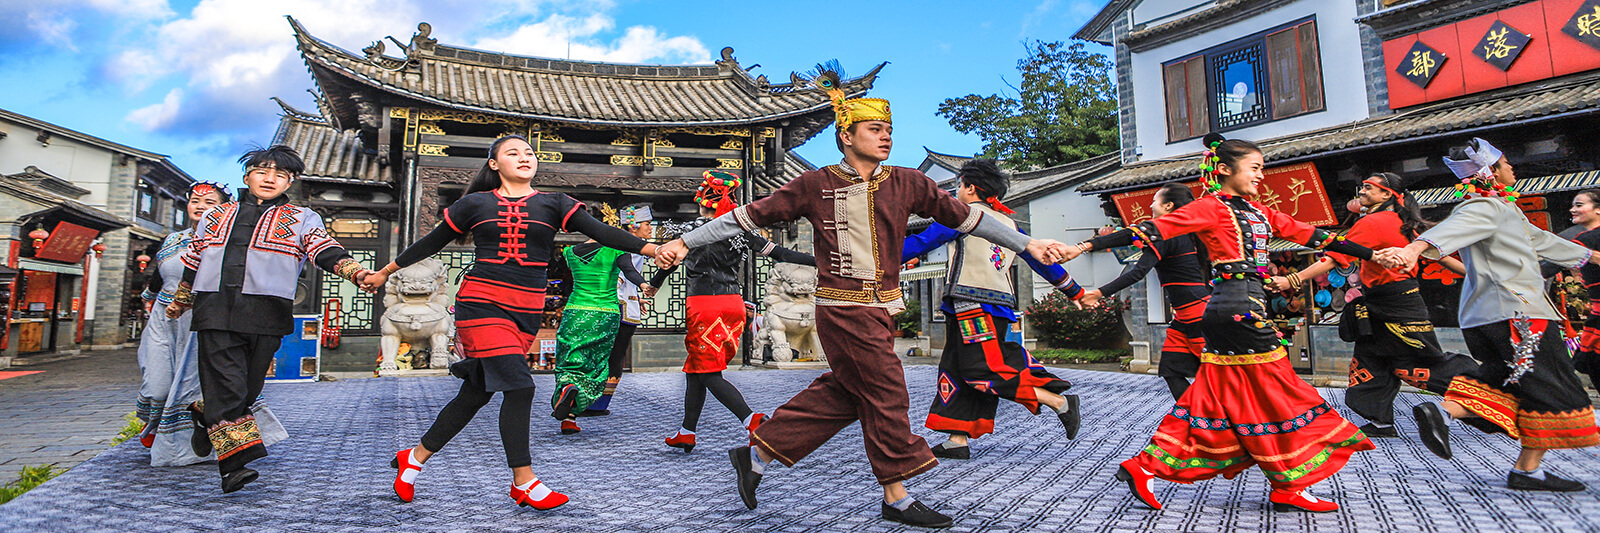 Yunnan Nationalities Village in China